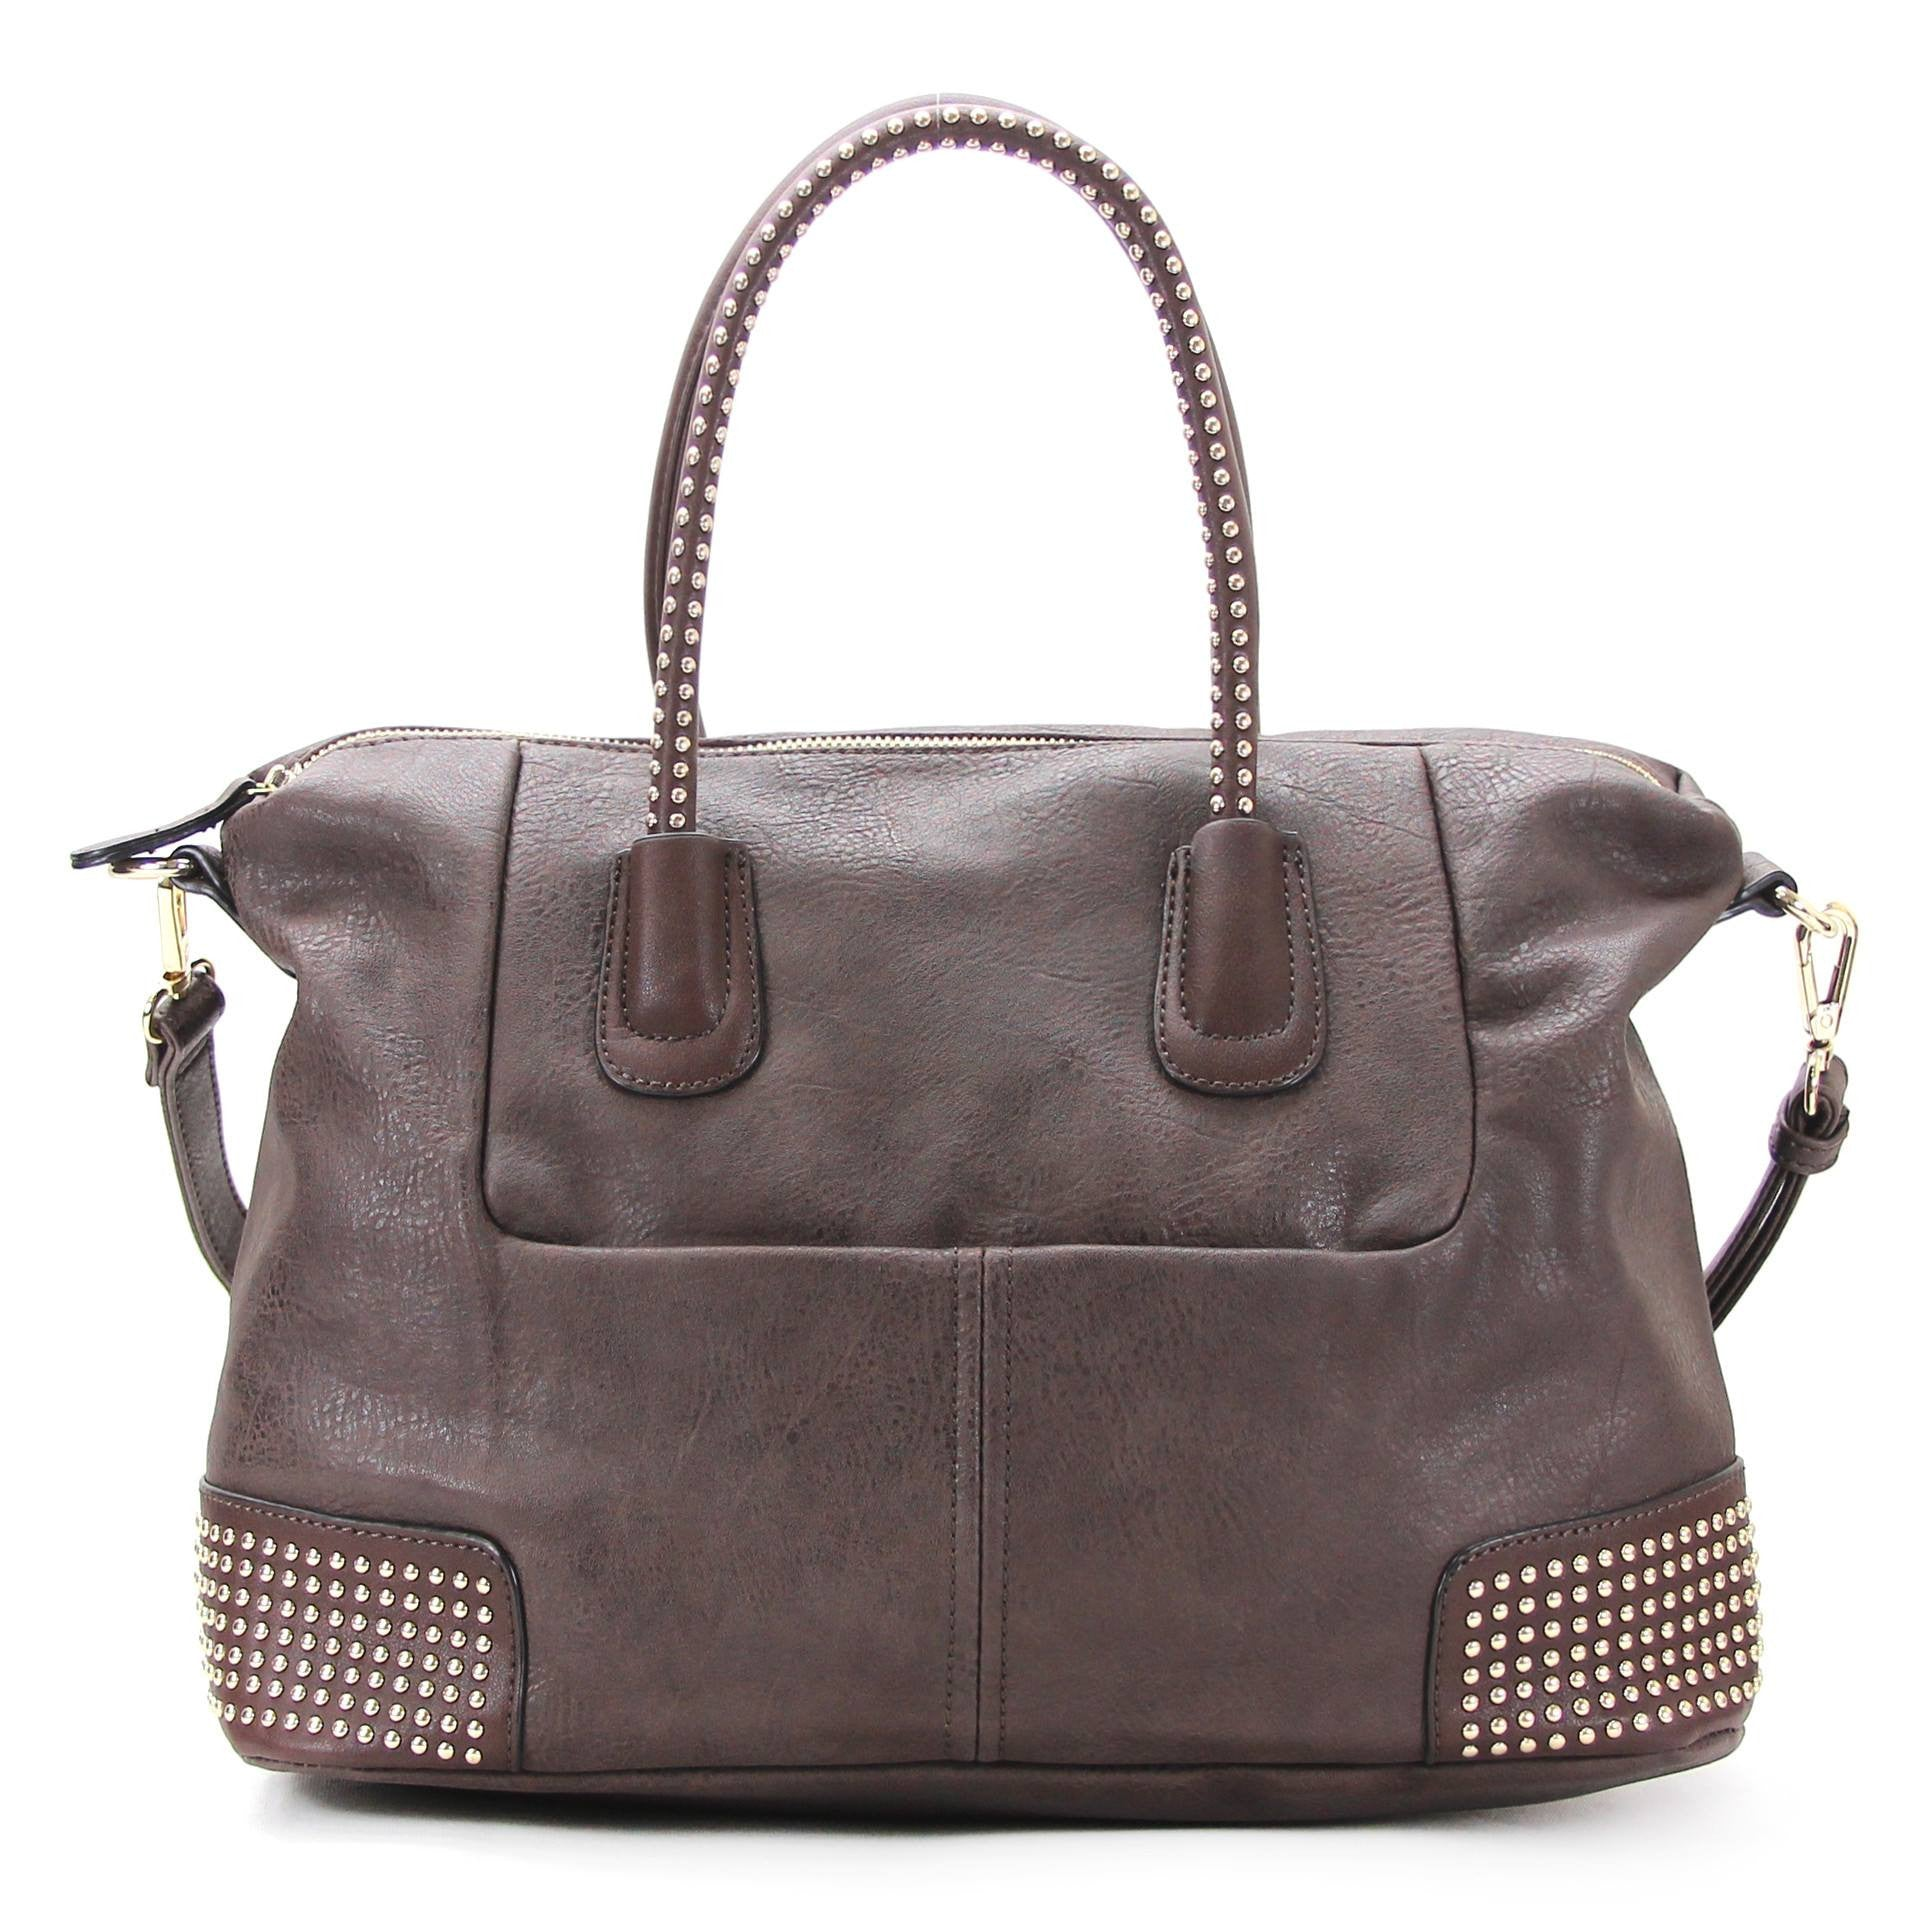 All Styles,Totes,New Arrivals,Shoulder Bags,Tote,Shoulder Bag,Bag - Robert Matthew Nina Tote - Dark Chocolate